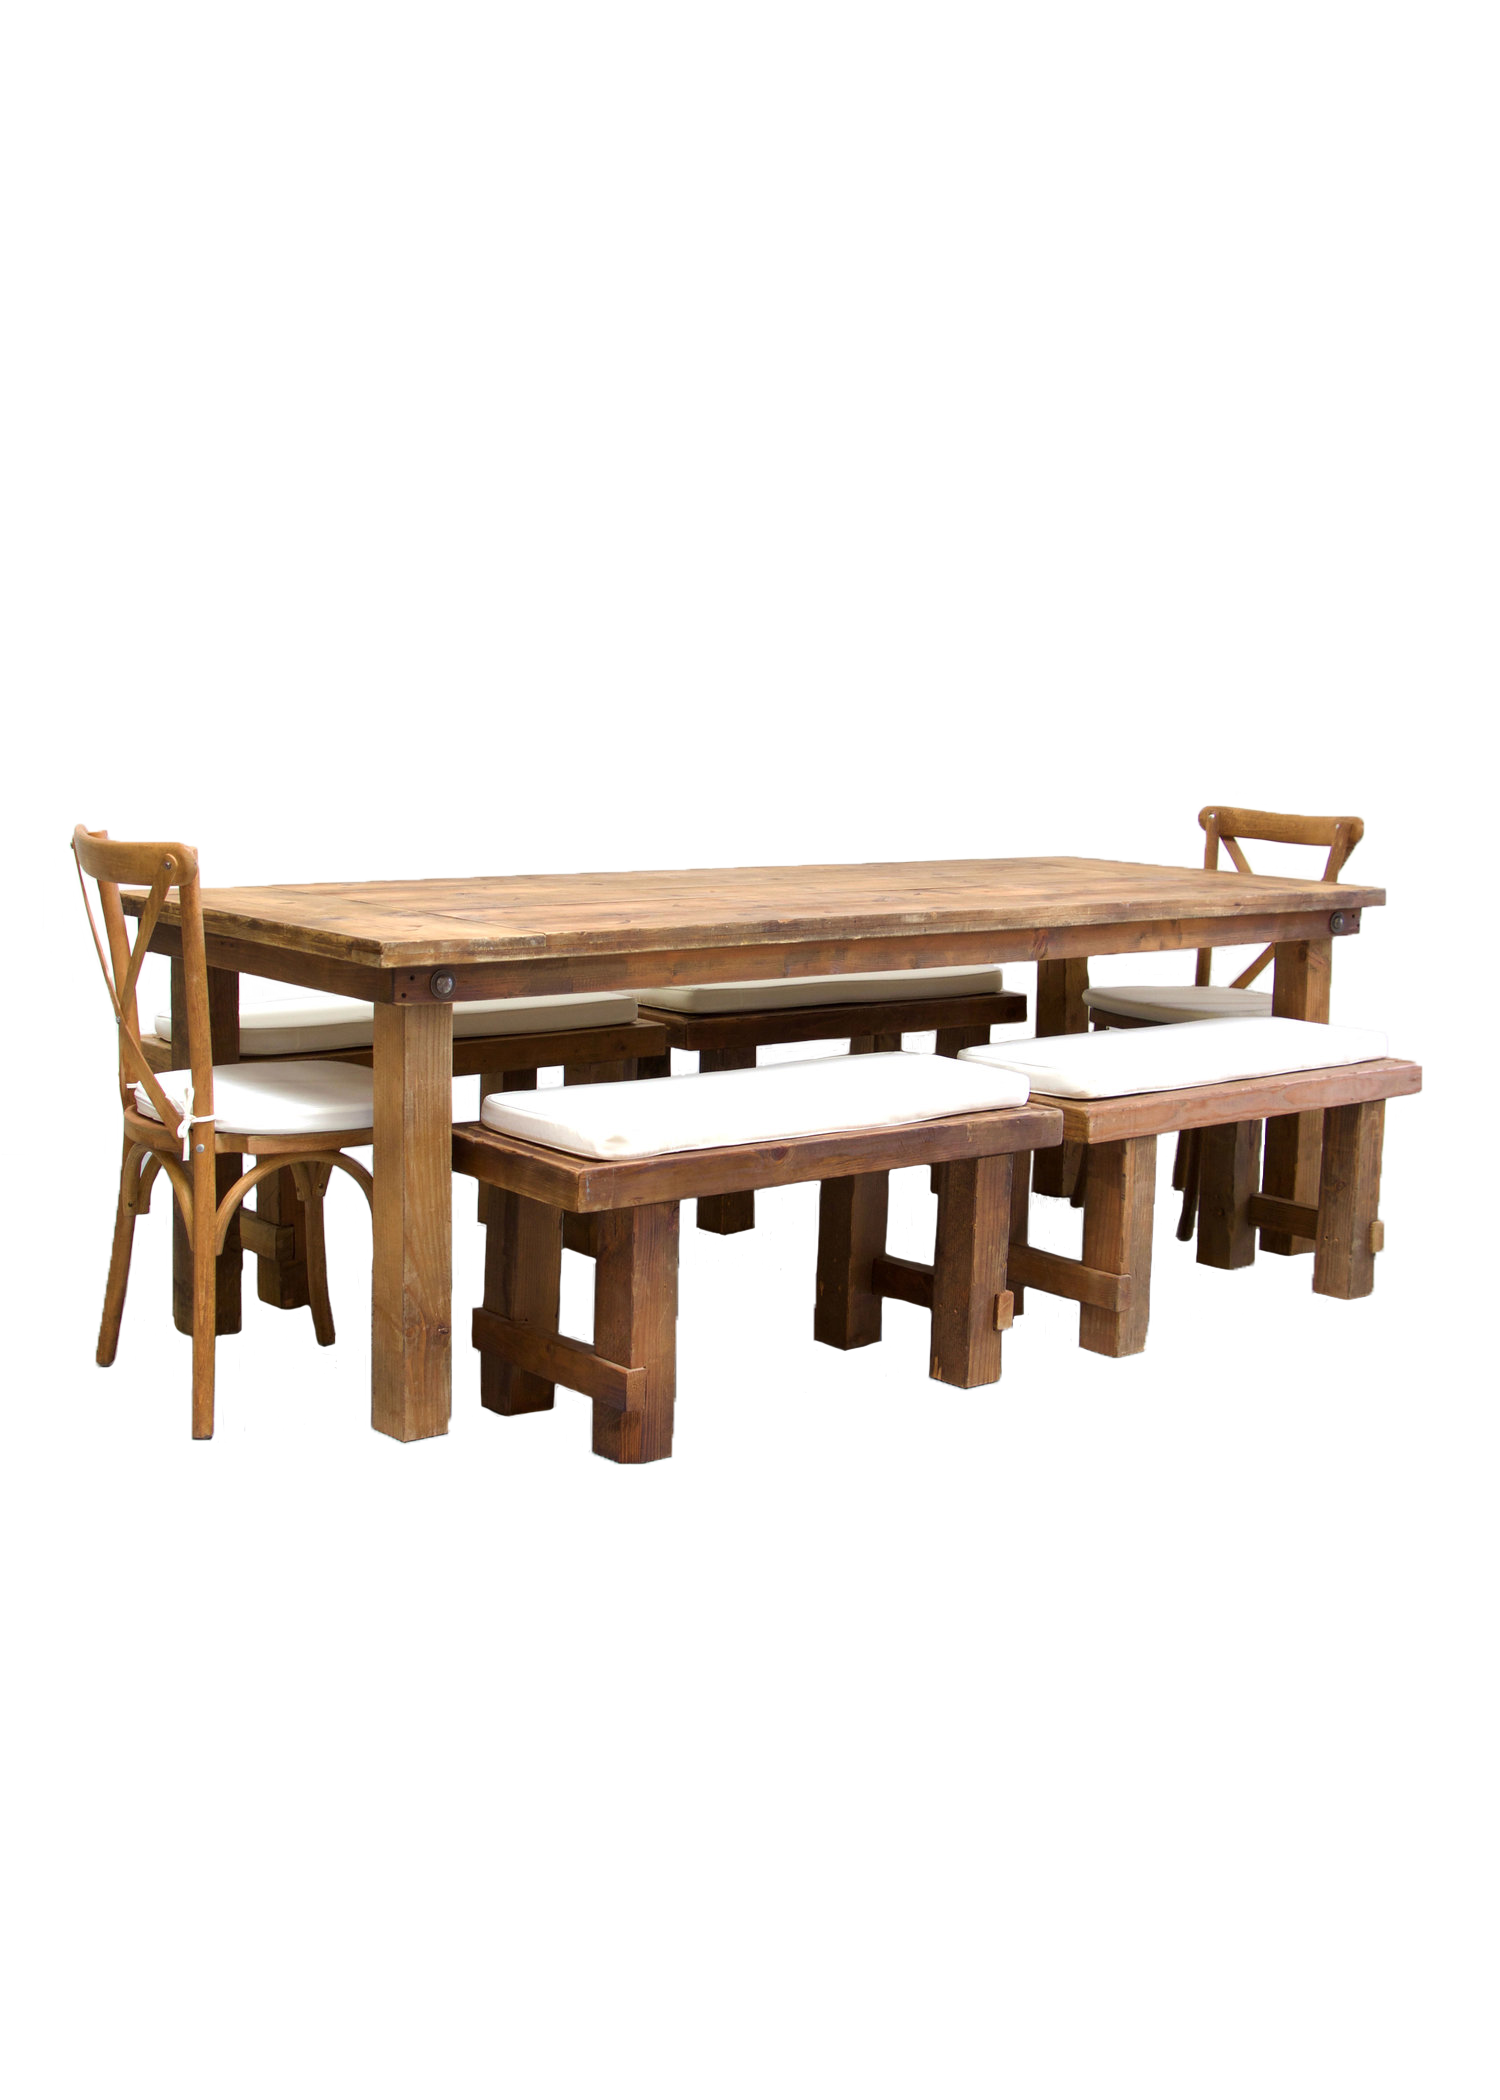 Honey Brown Farm Table with 4 Short Benches & 2 Cross-Back Chairs $160